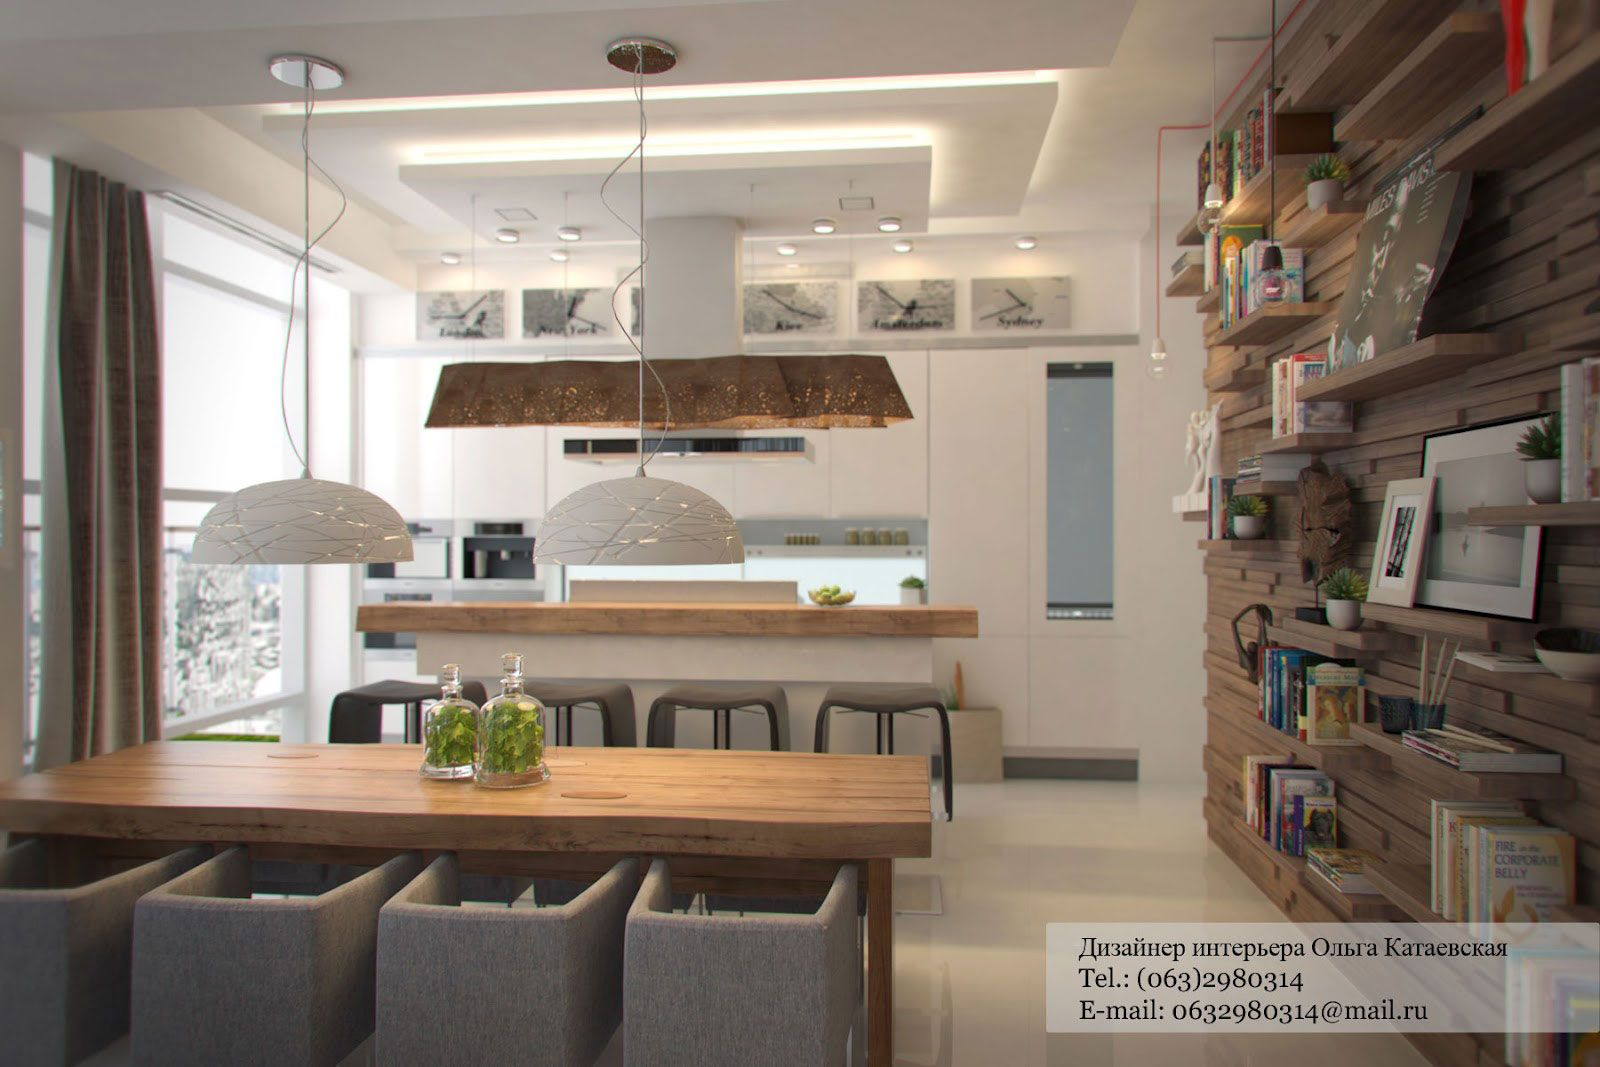 Modern Rustic Studio Apartment Kitchen And Dining Room Combined Together Interior Lighting Decorating Ideas With Wood